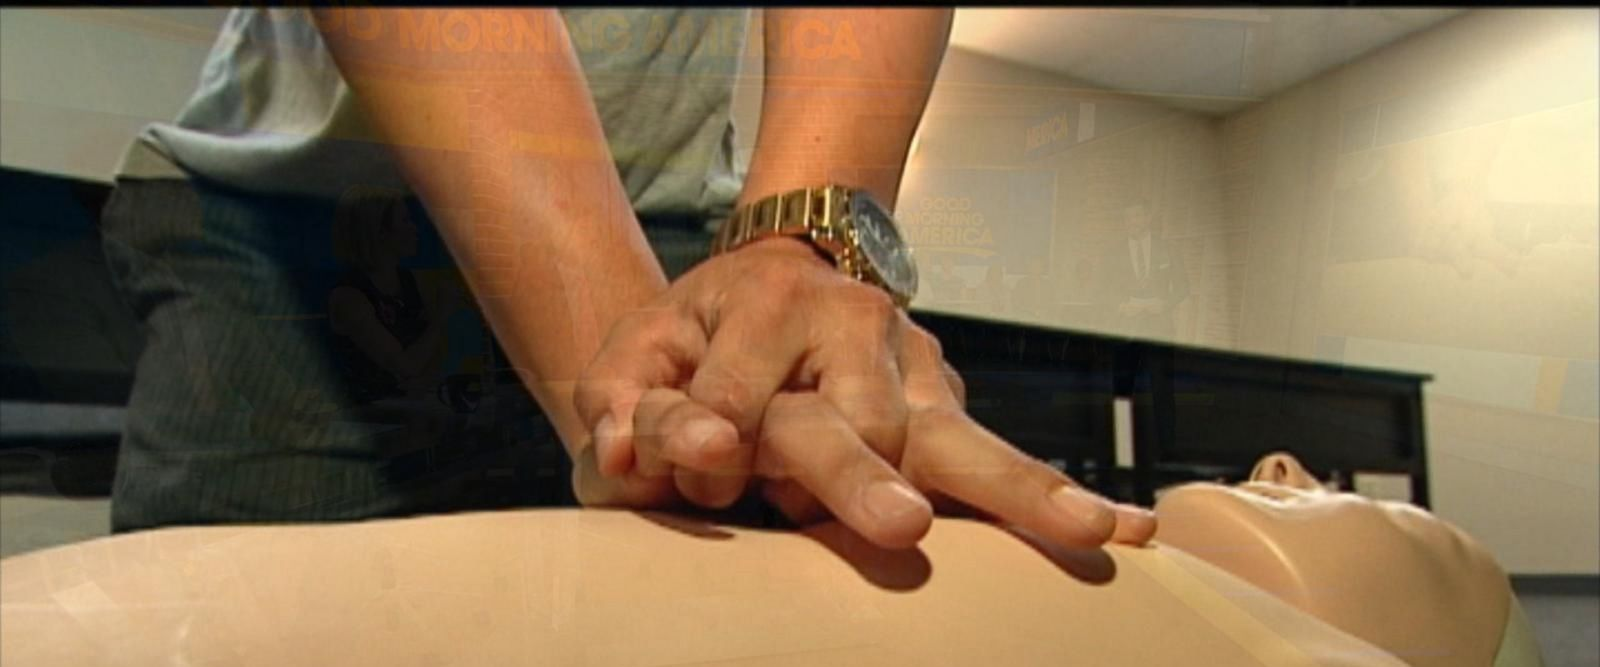 VIDEO: How learning hands-only CPR can help save lives